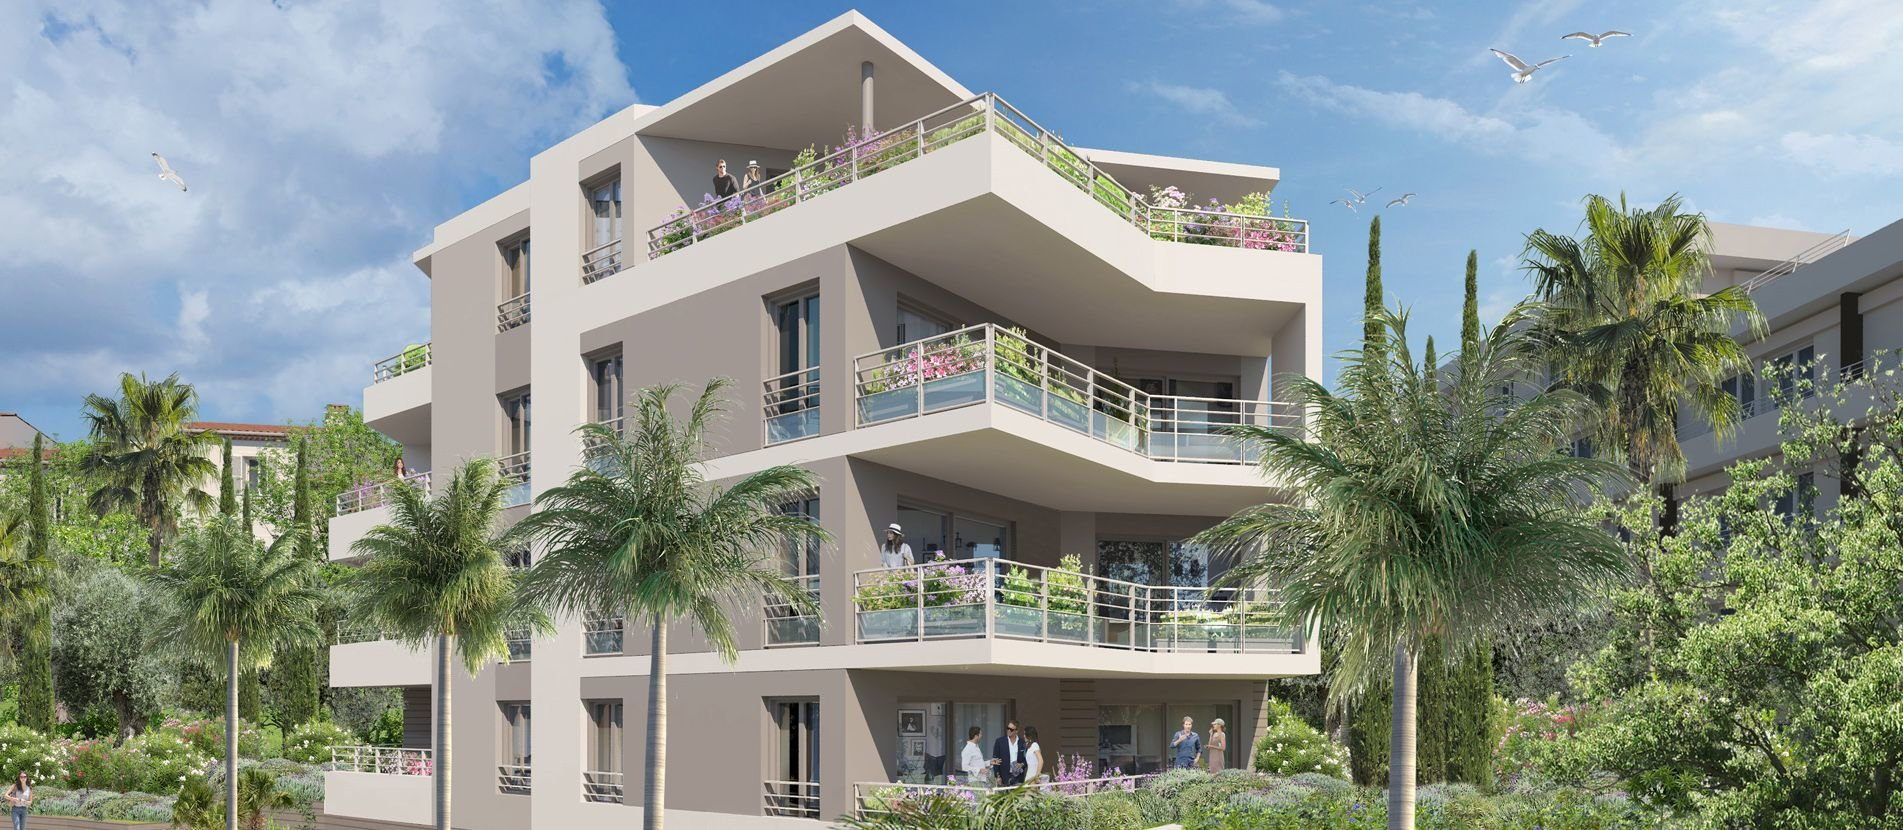 LE CANNES 3P, 89,74 m2, terrace 34,88 m2.